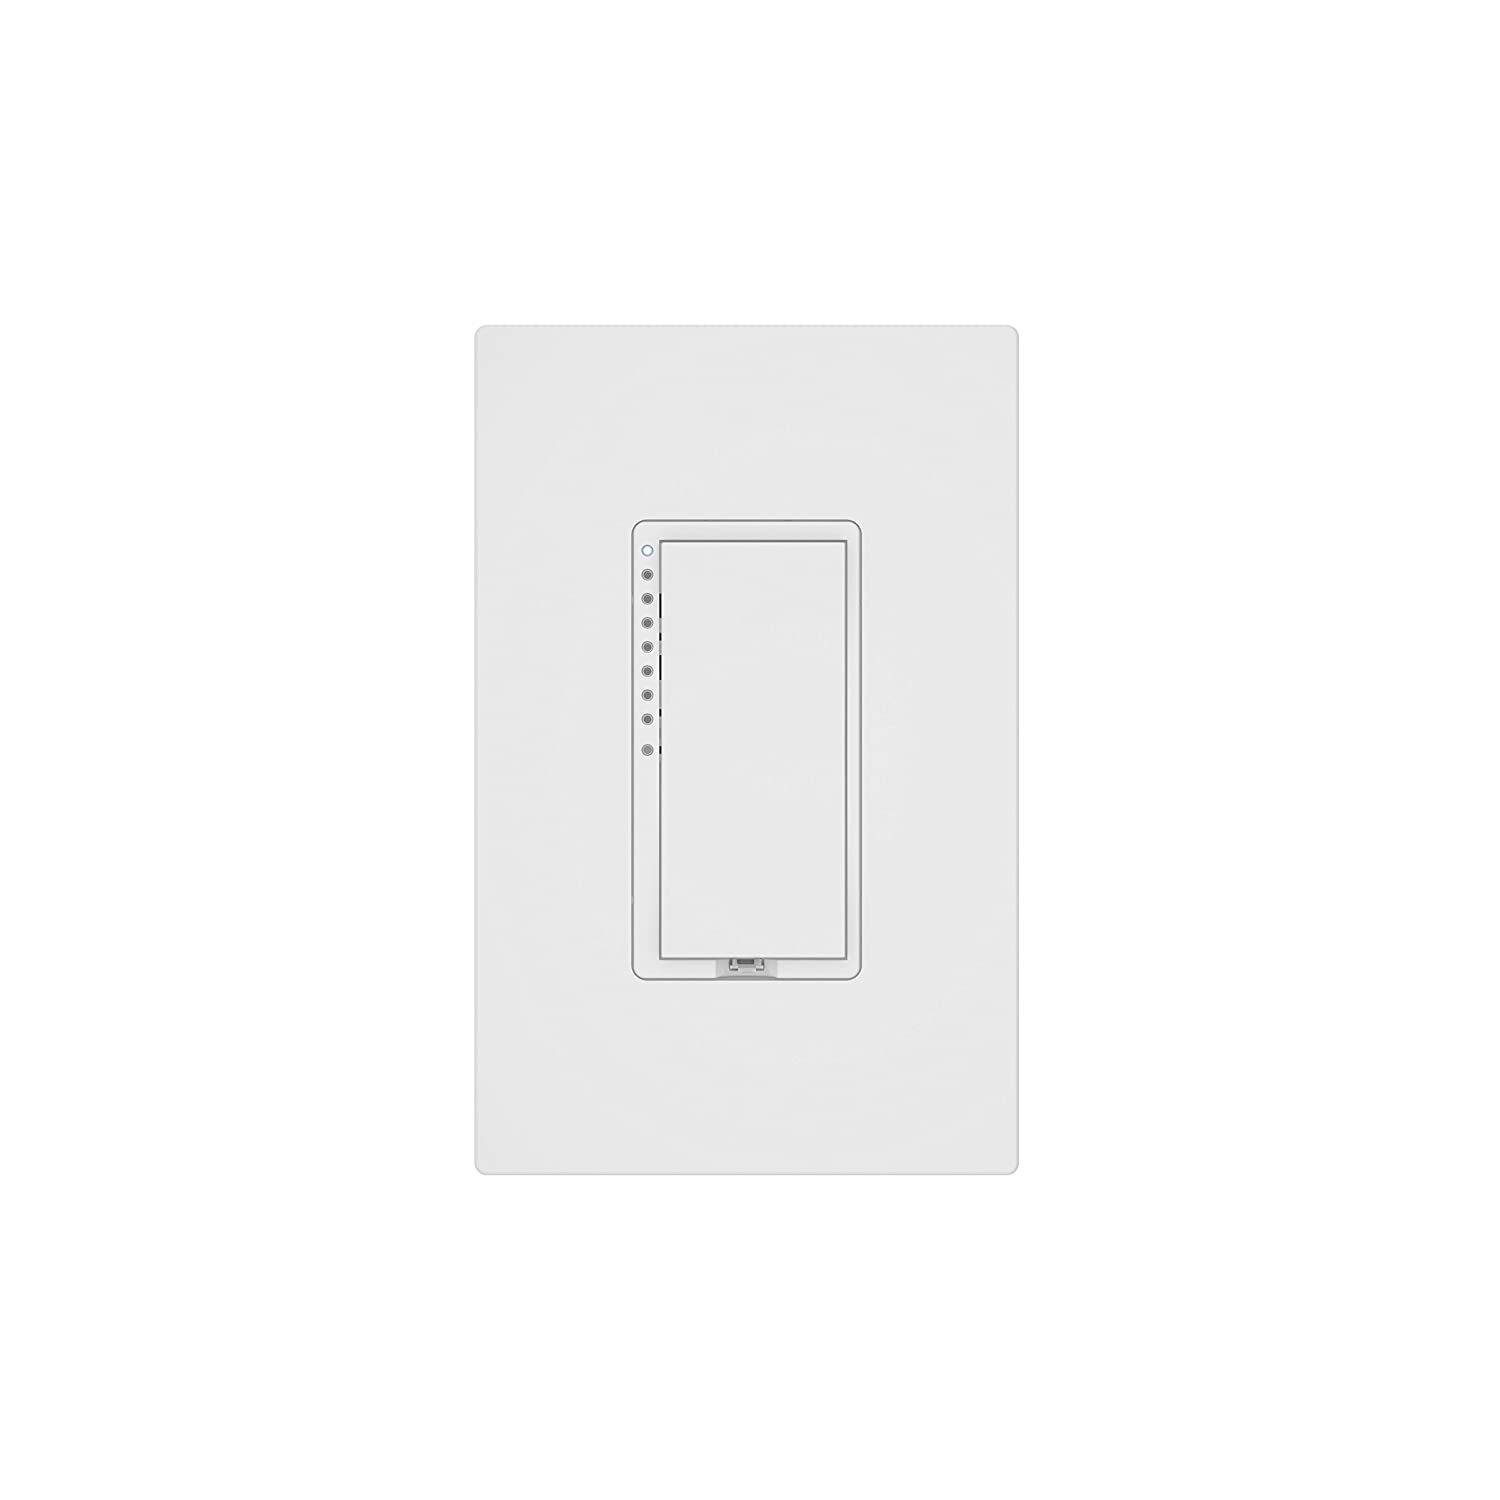 Insteon Smart Dimmer Wall Switch, Works with Alexa via Insteon Bridge, Uses  Superior Dual-Mesh Wireless Technology for Unbeatable Reliability - Better  than ...